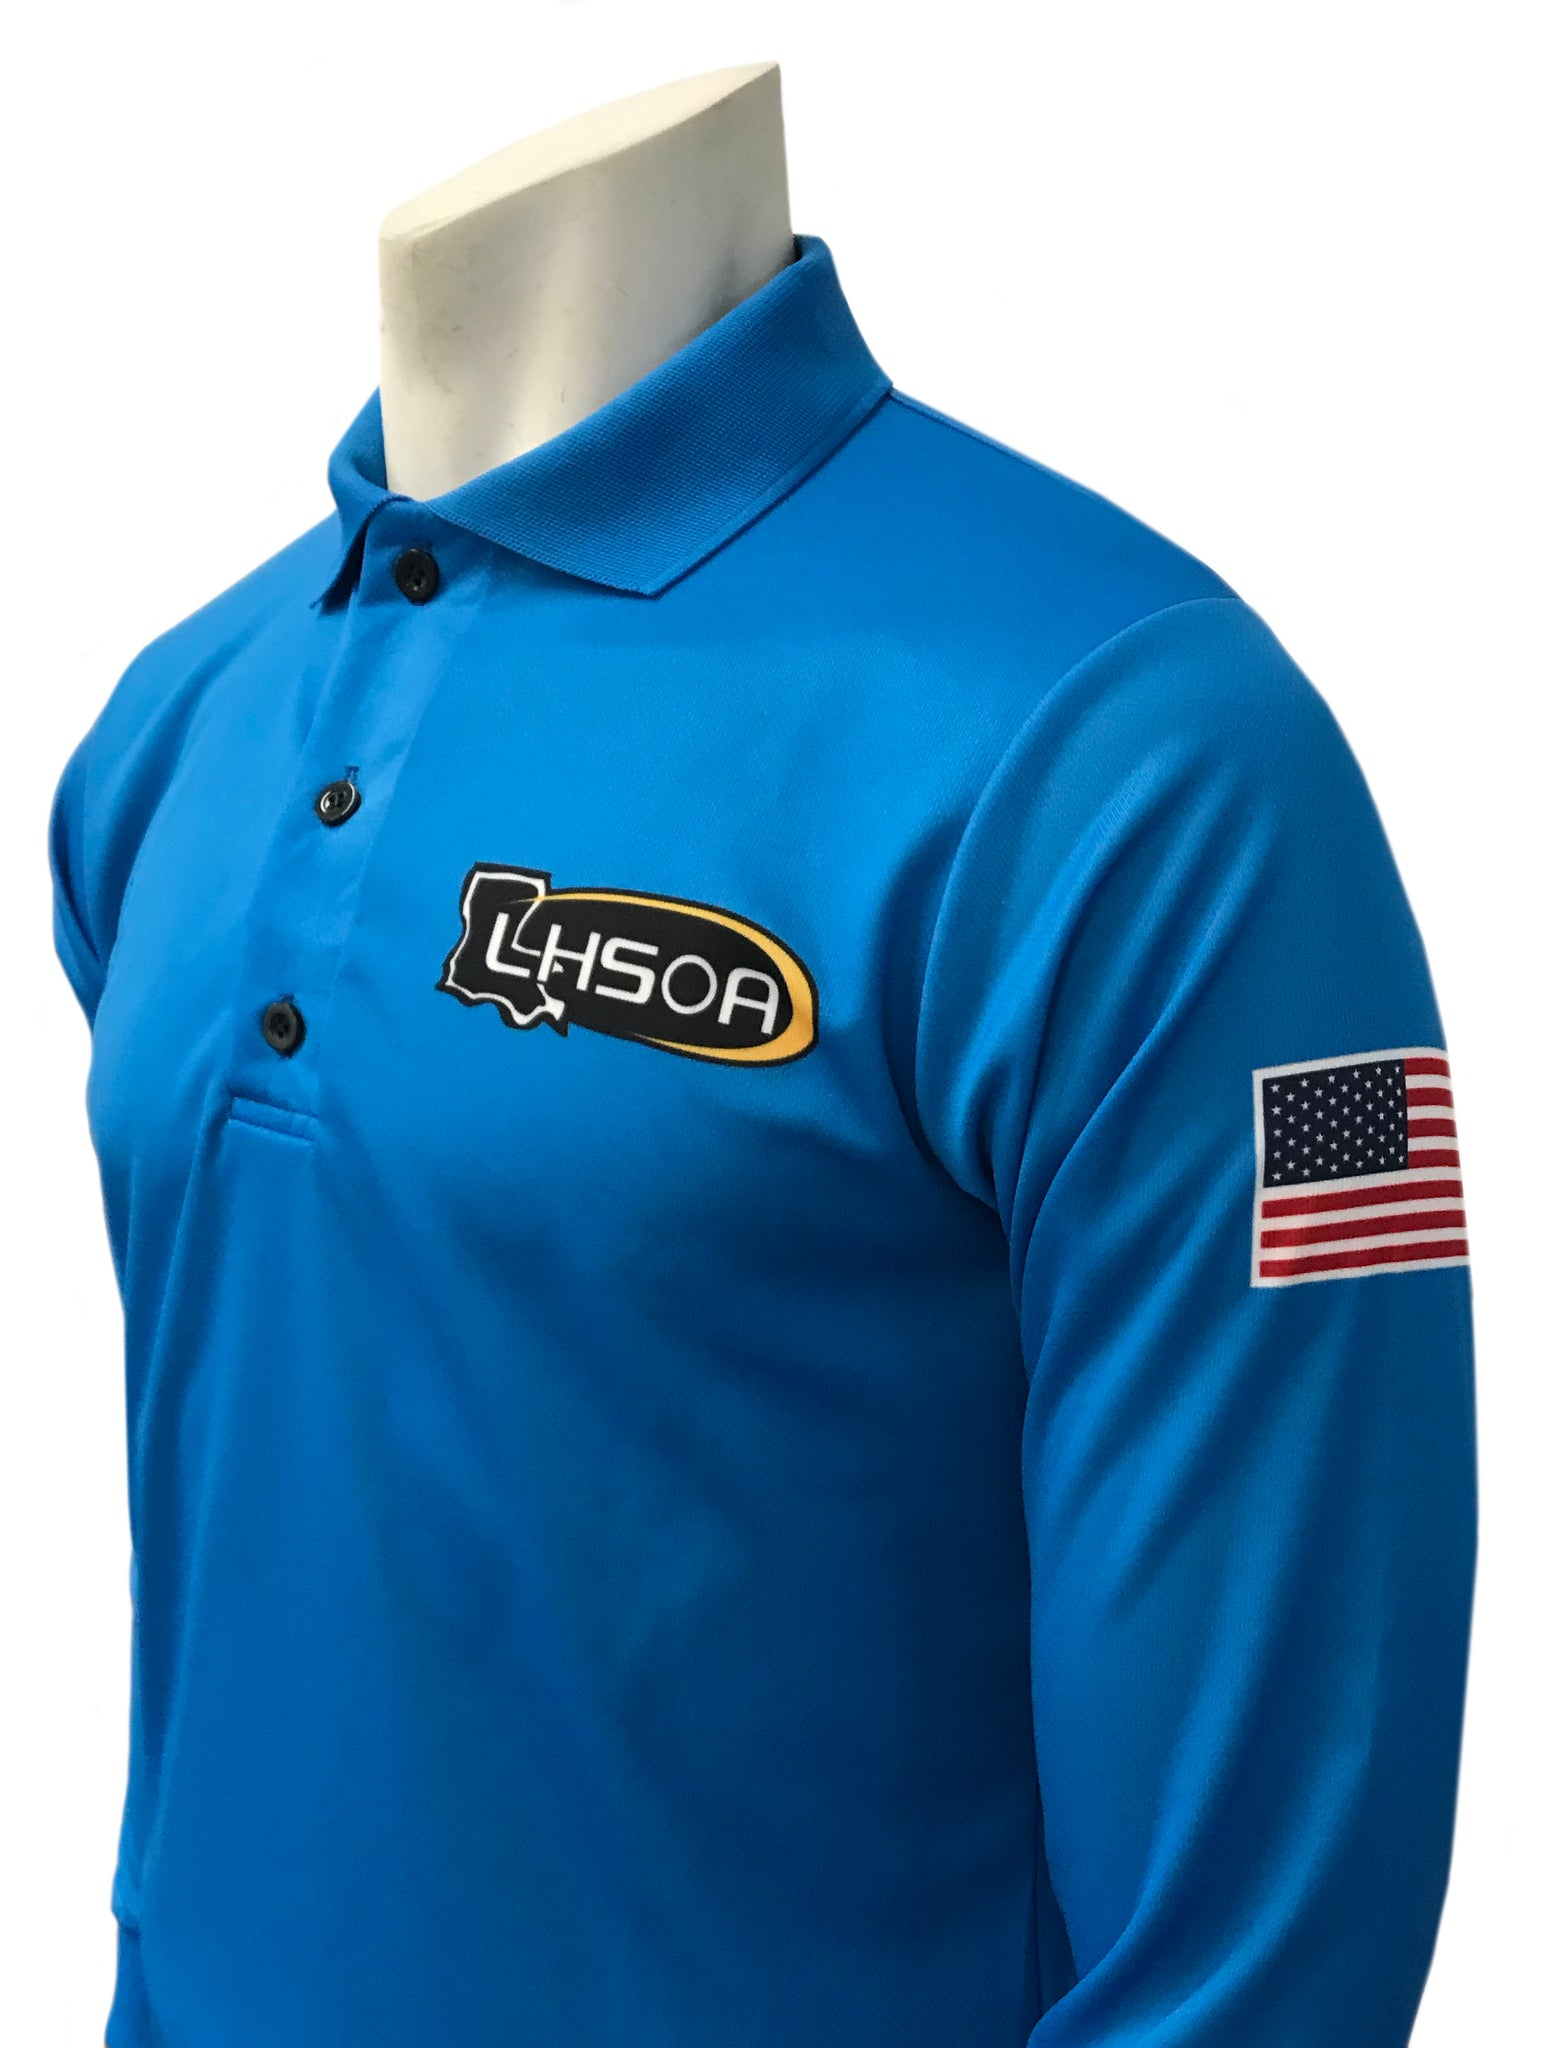 "USA401LA - Smitty ""Made in USA"" - BRIGHT BLUE - Volleyball Men's Long Sleeve Shirt"